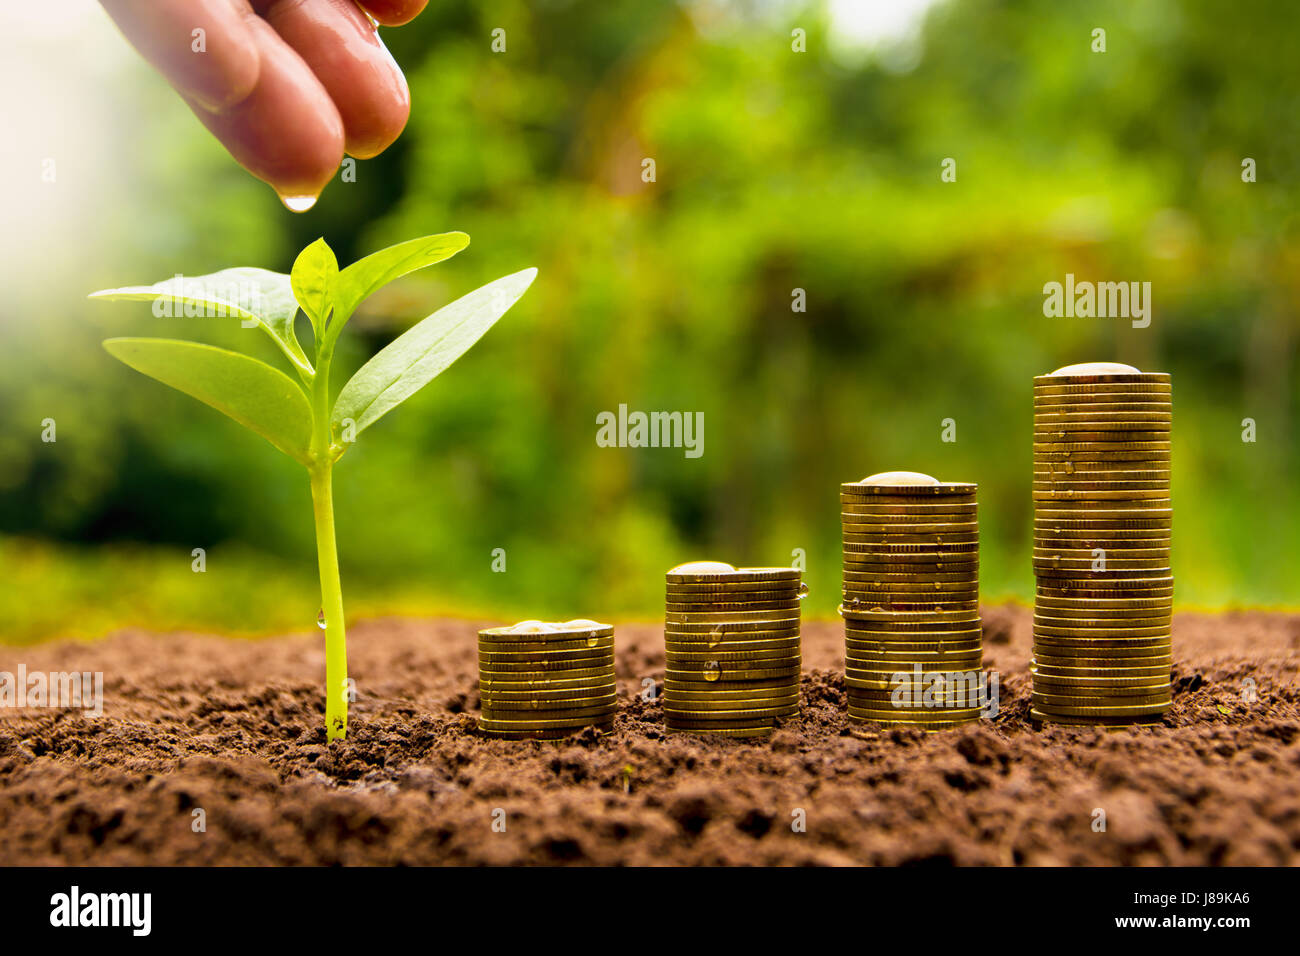 Female hand watering young plant with stack coin for growing business - Stock Image